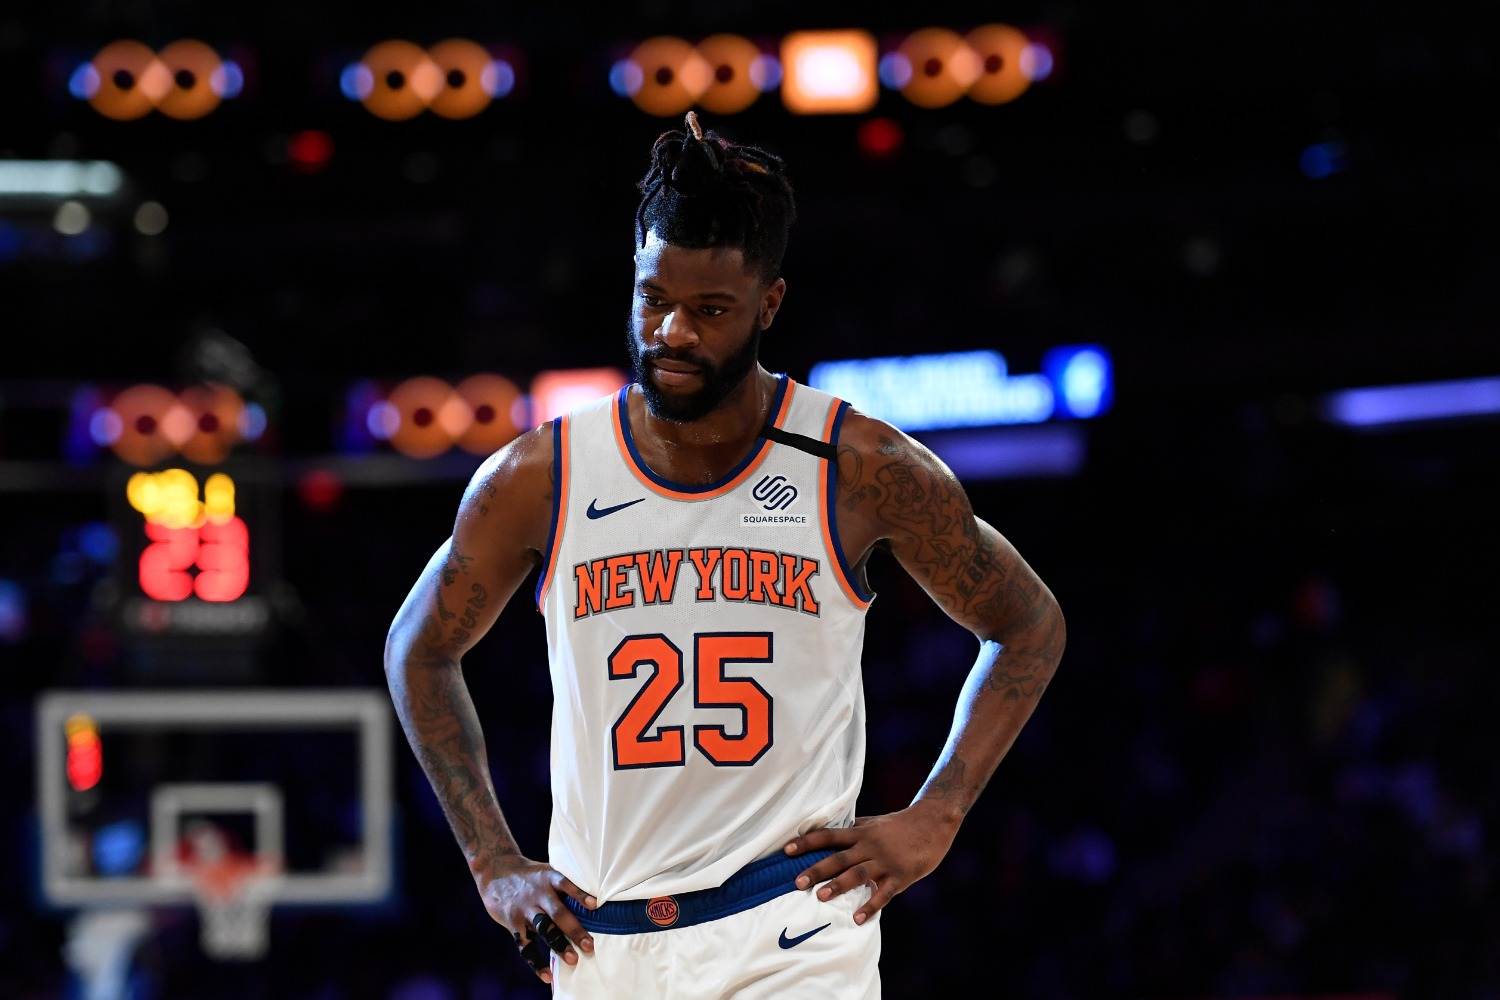 Knicks forward Reggie Bullock suffered devastating losses with the tragic murders of his sisters.